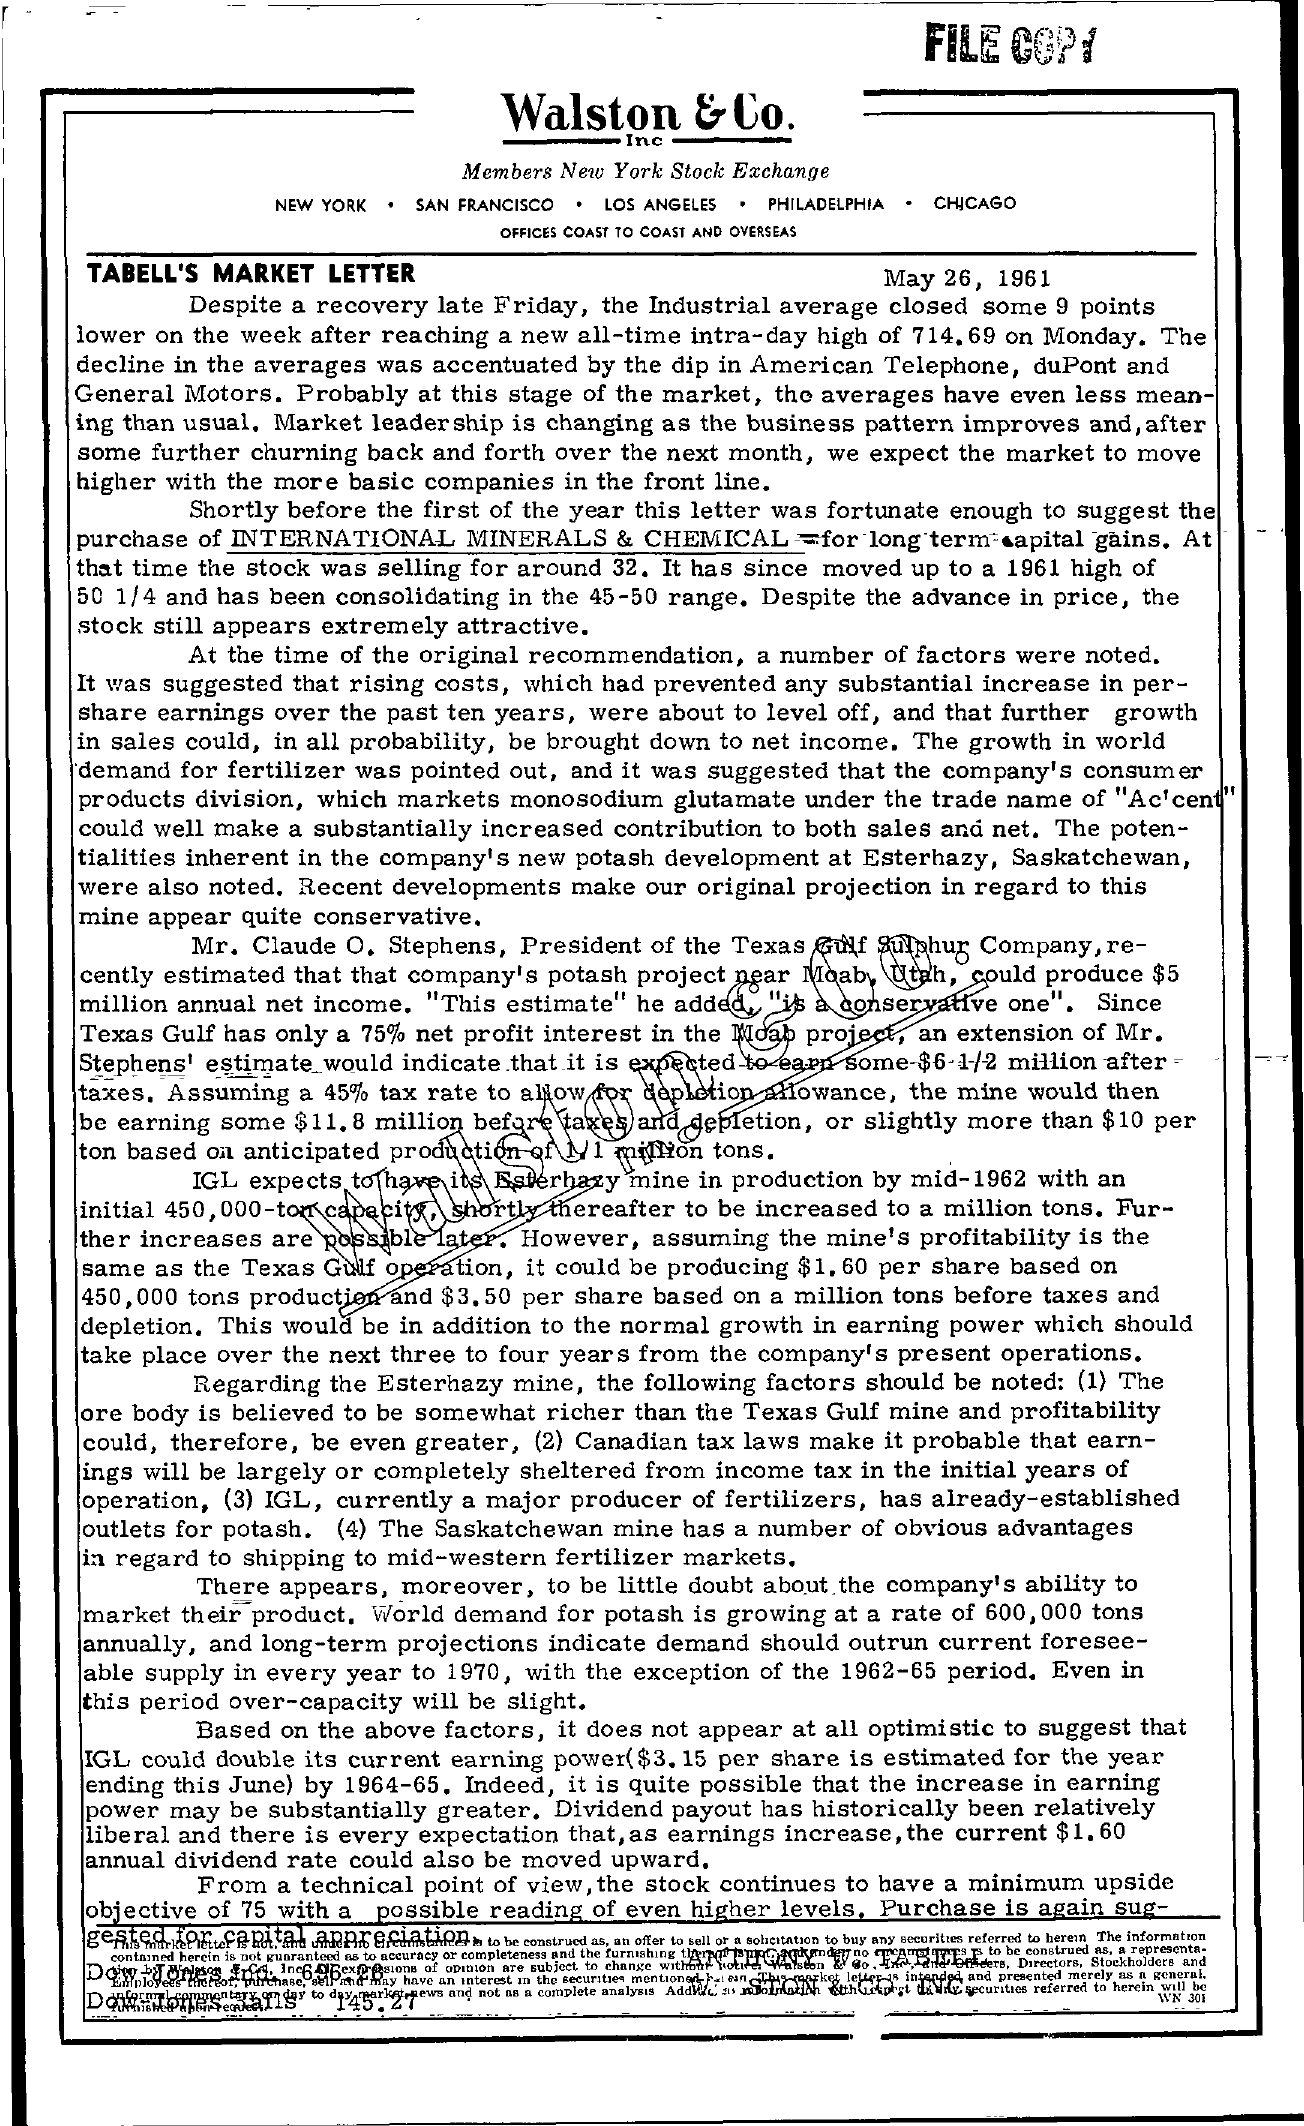 Tabell's Market Letter - May 26, 1961